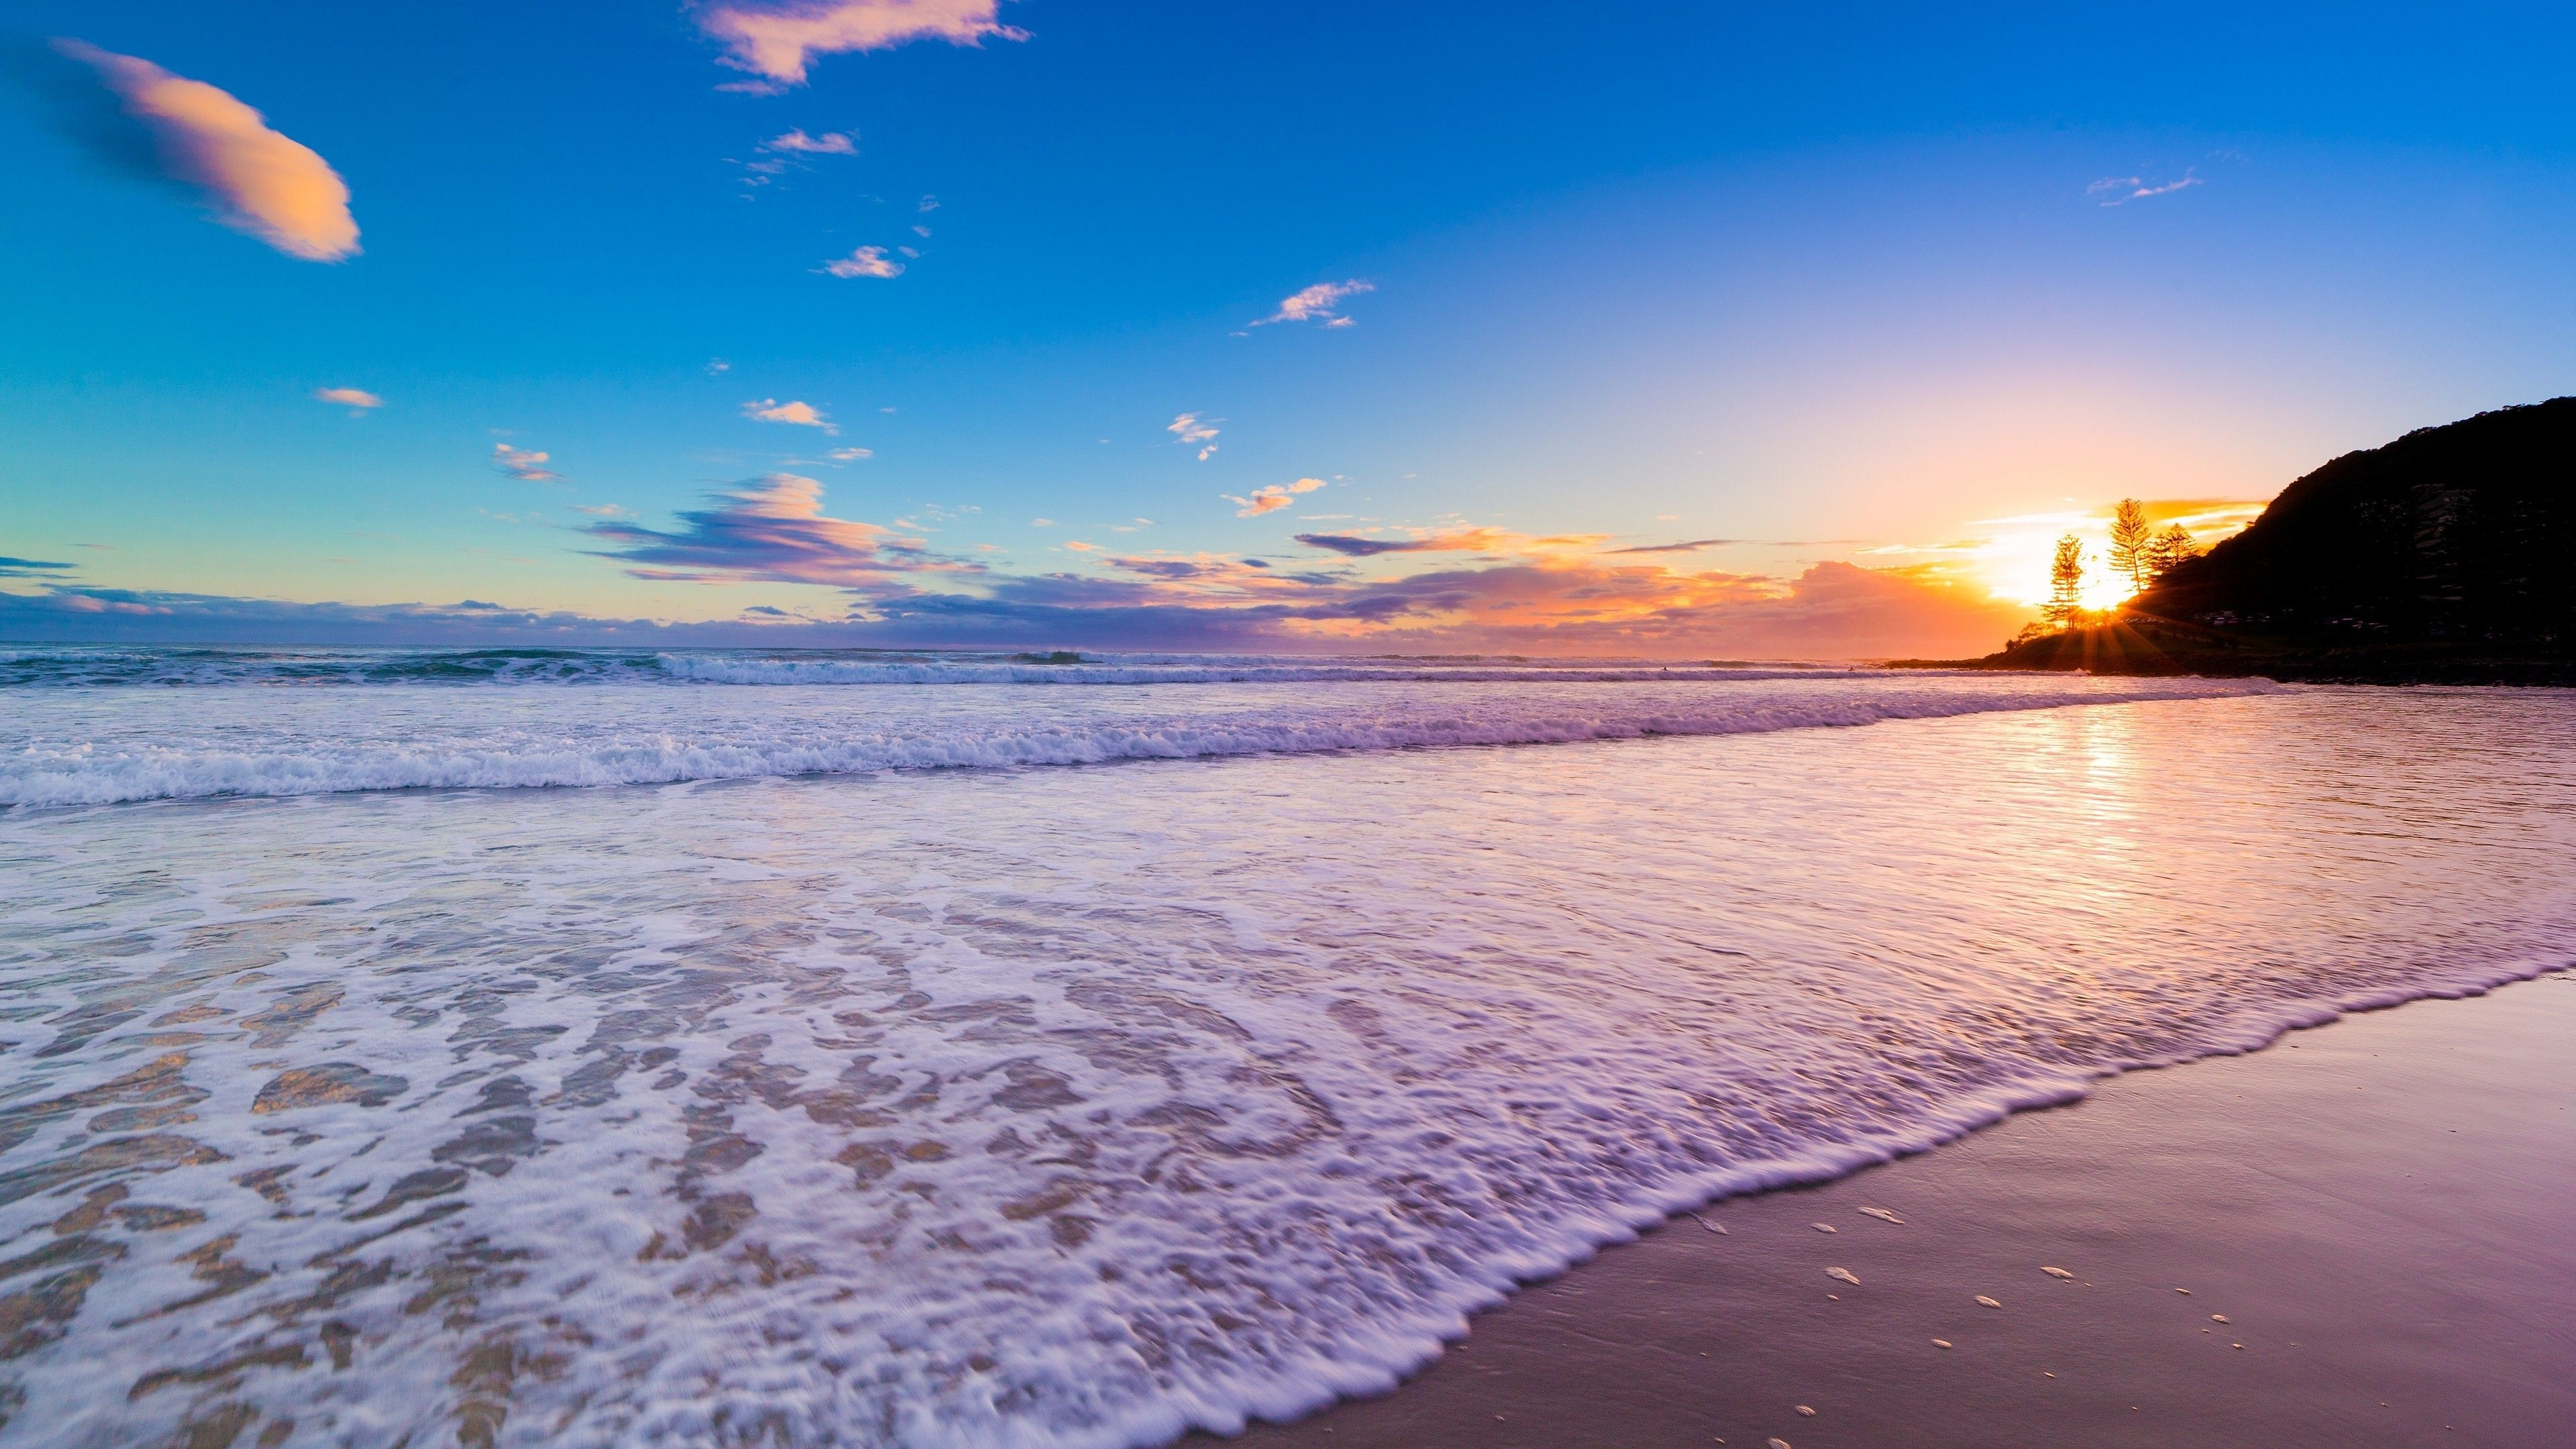 Windows 10 Wallpaper Beach Mywallpapers Site Beach Sunset Wallpaper Beach Wallpaper Sunset Wallpaper